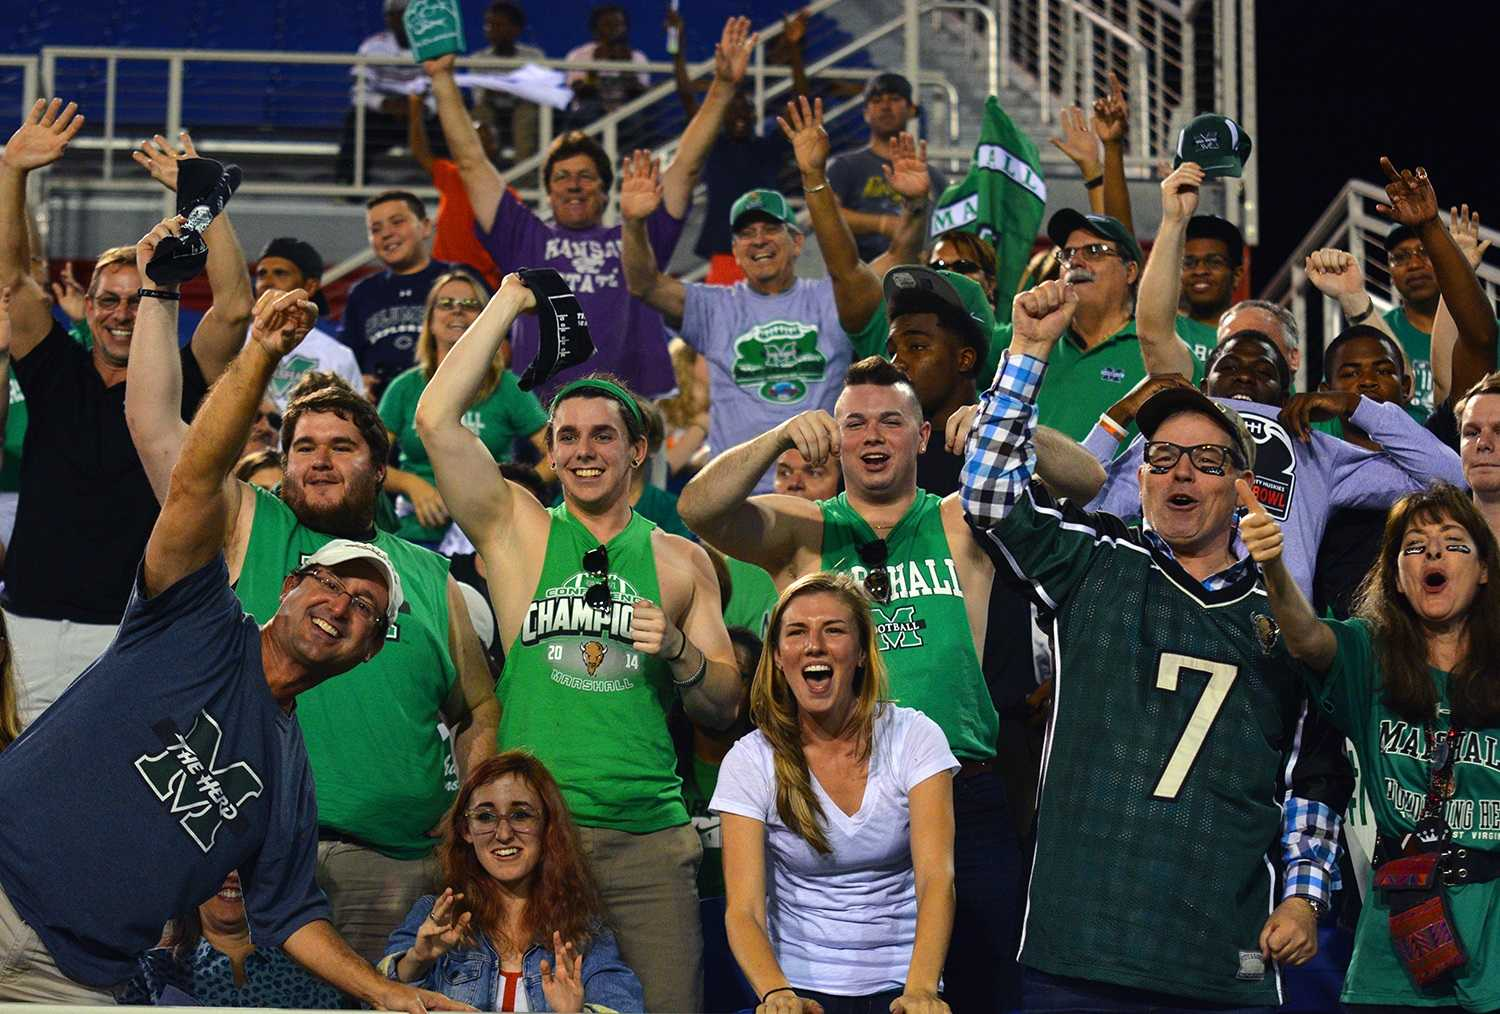 Known for having a strong contingent in south Florida, Marshall fans made up a significant portion of the announced 29,419 who attended the Boca Raton Bowl.